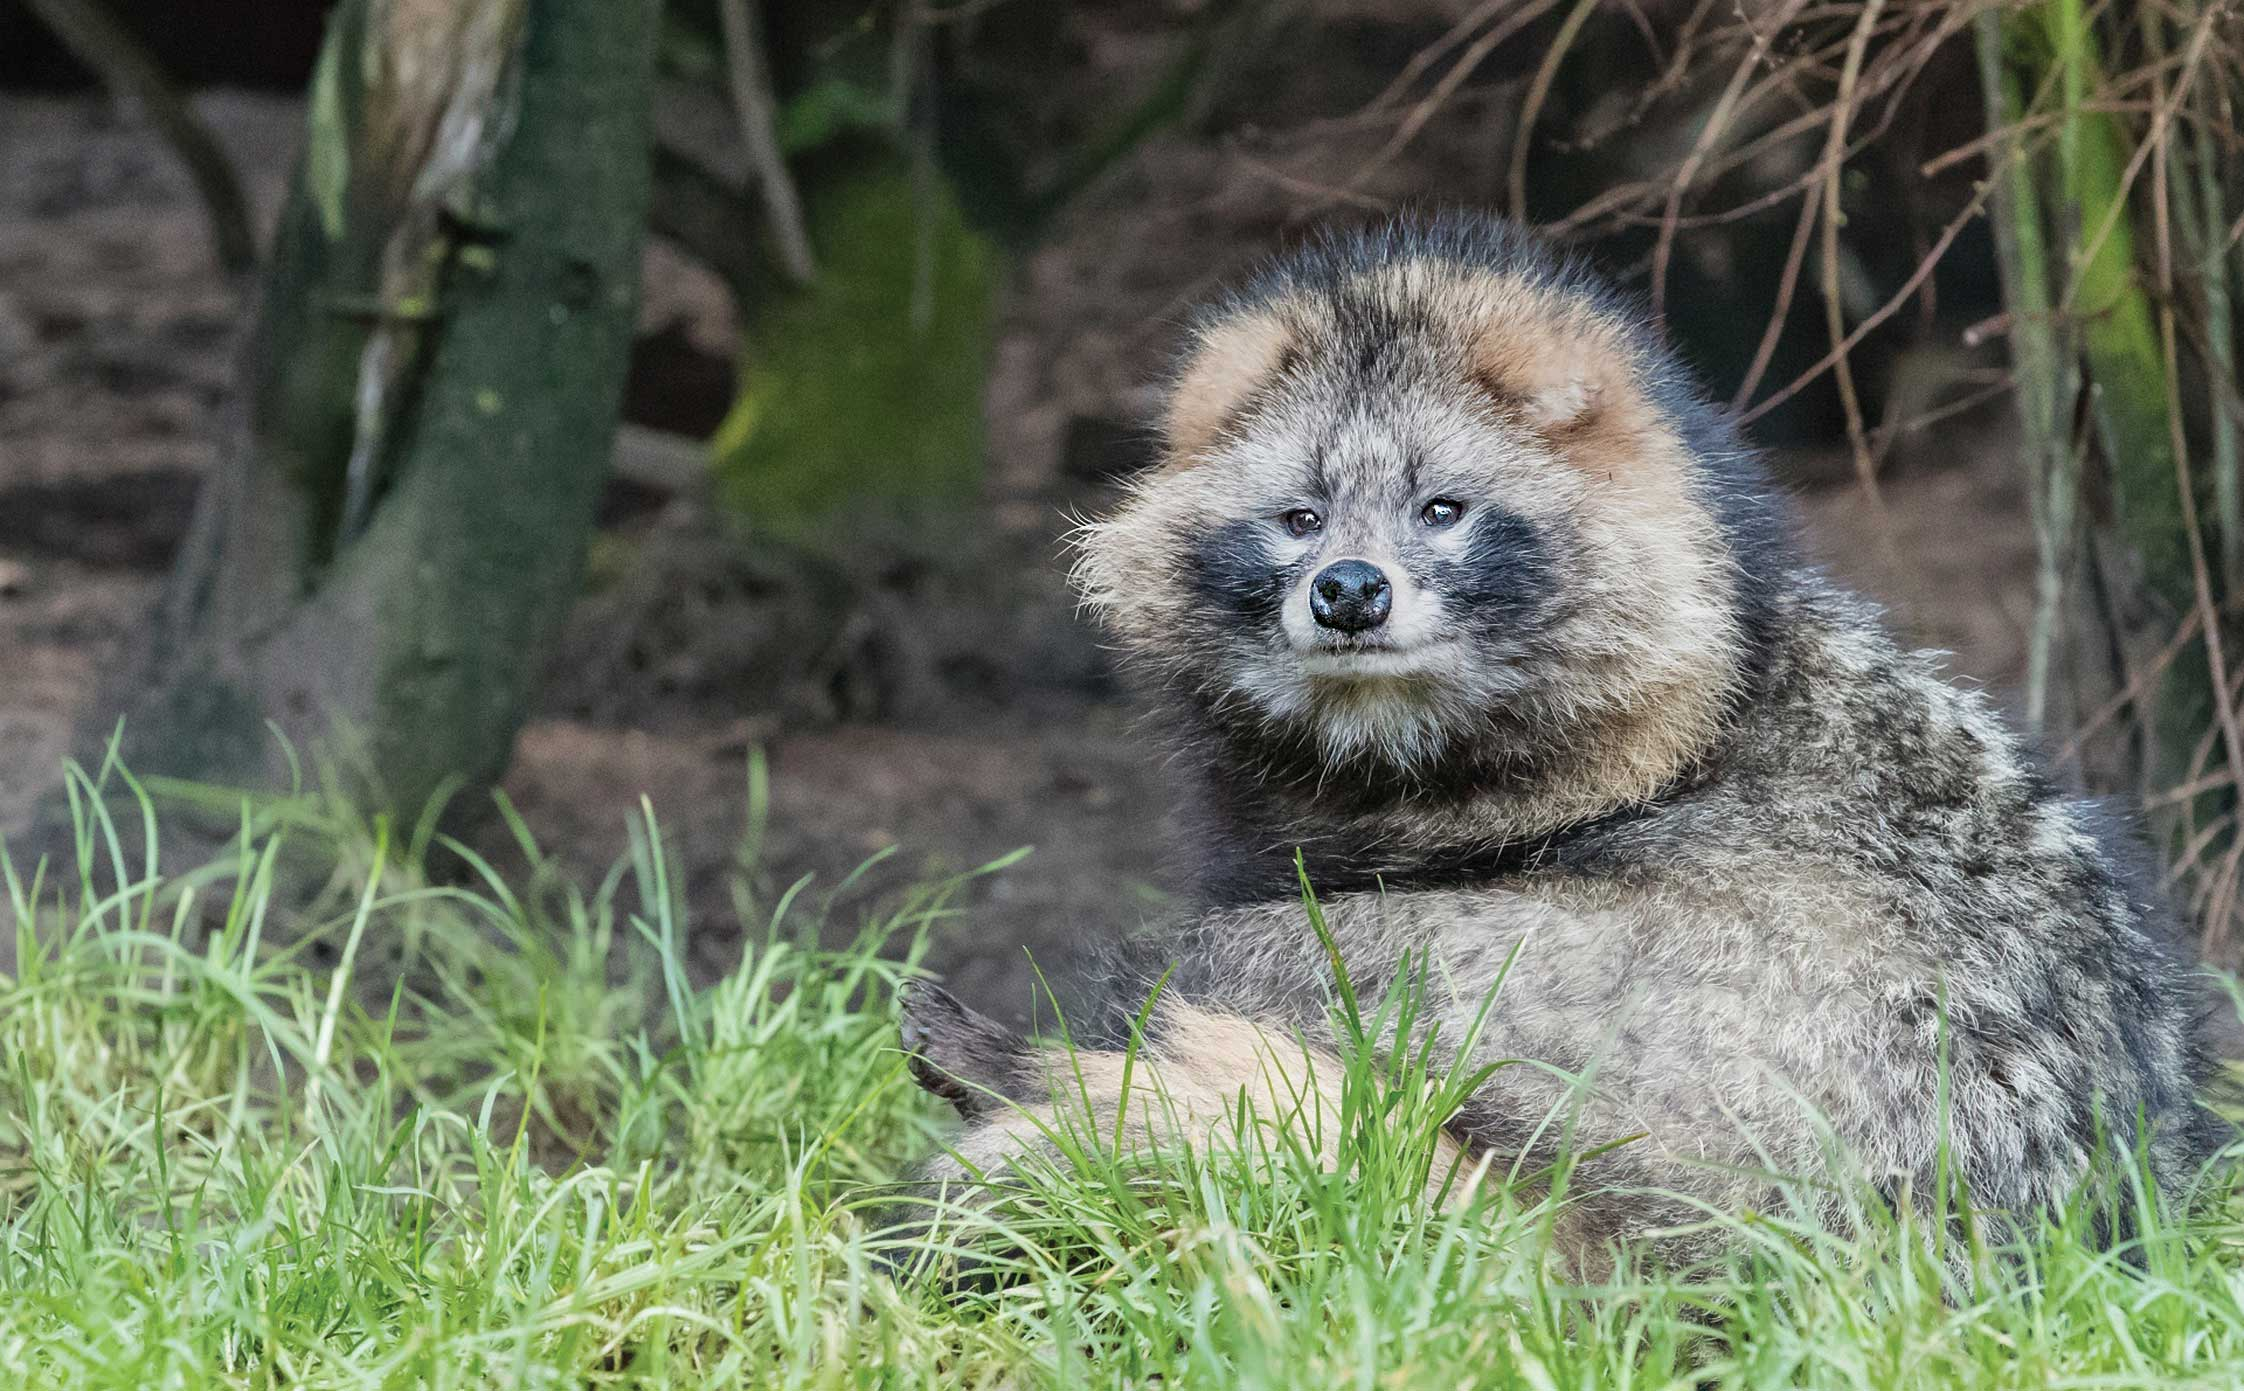 Investigating an imposter – Raccoon dogs!